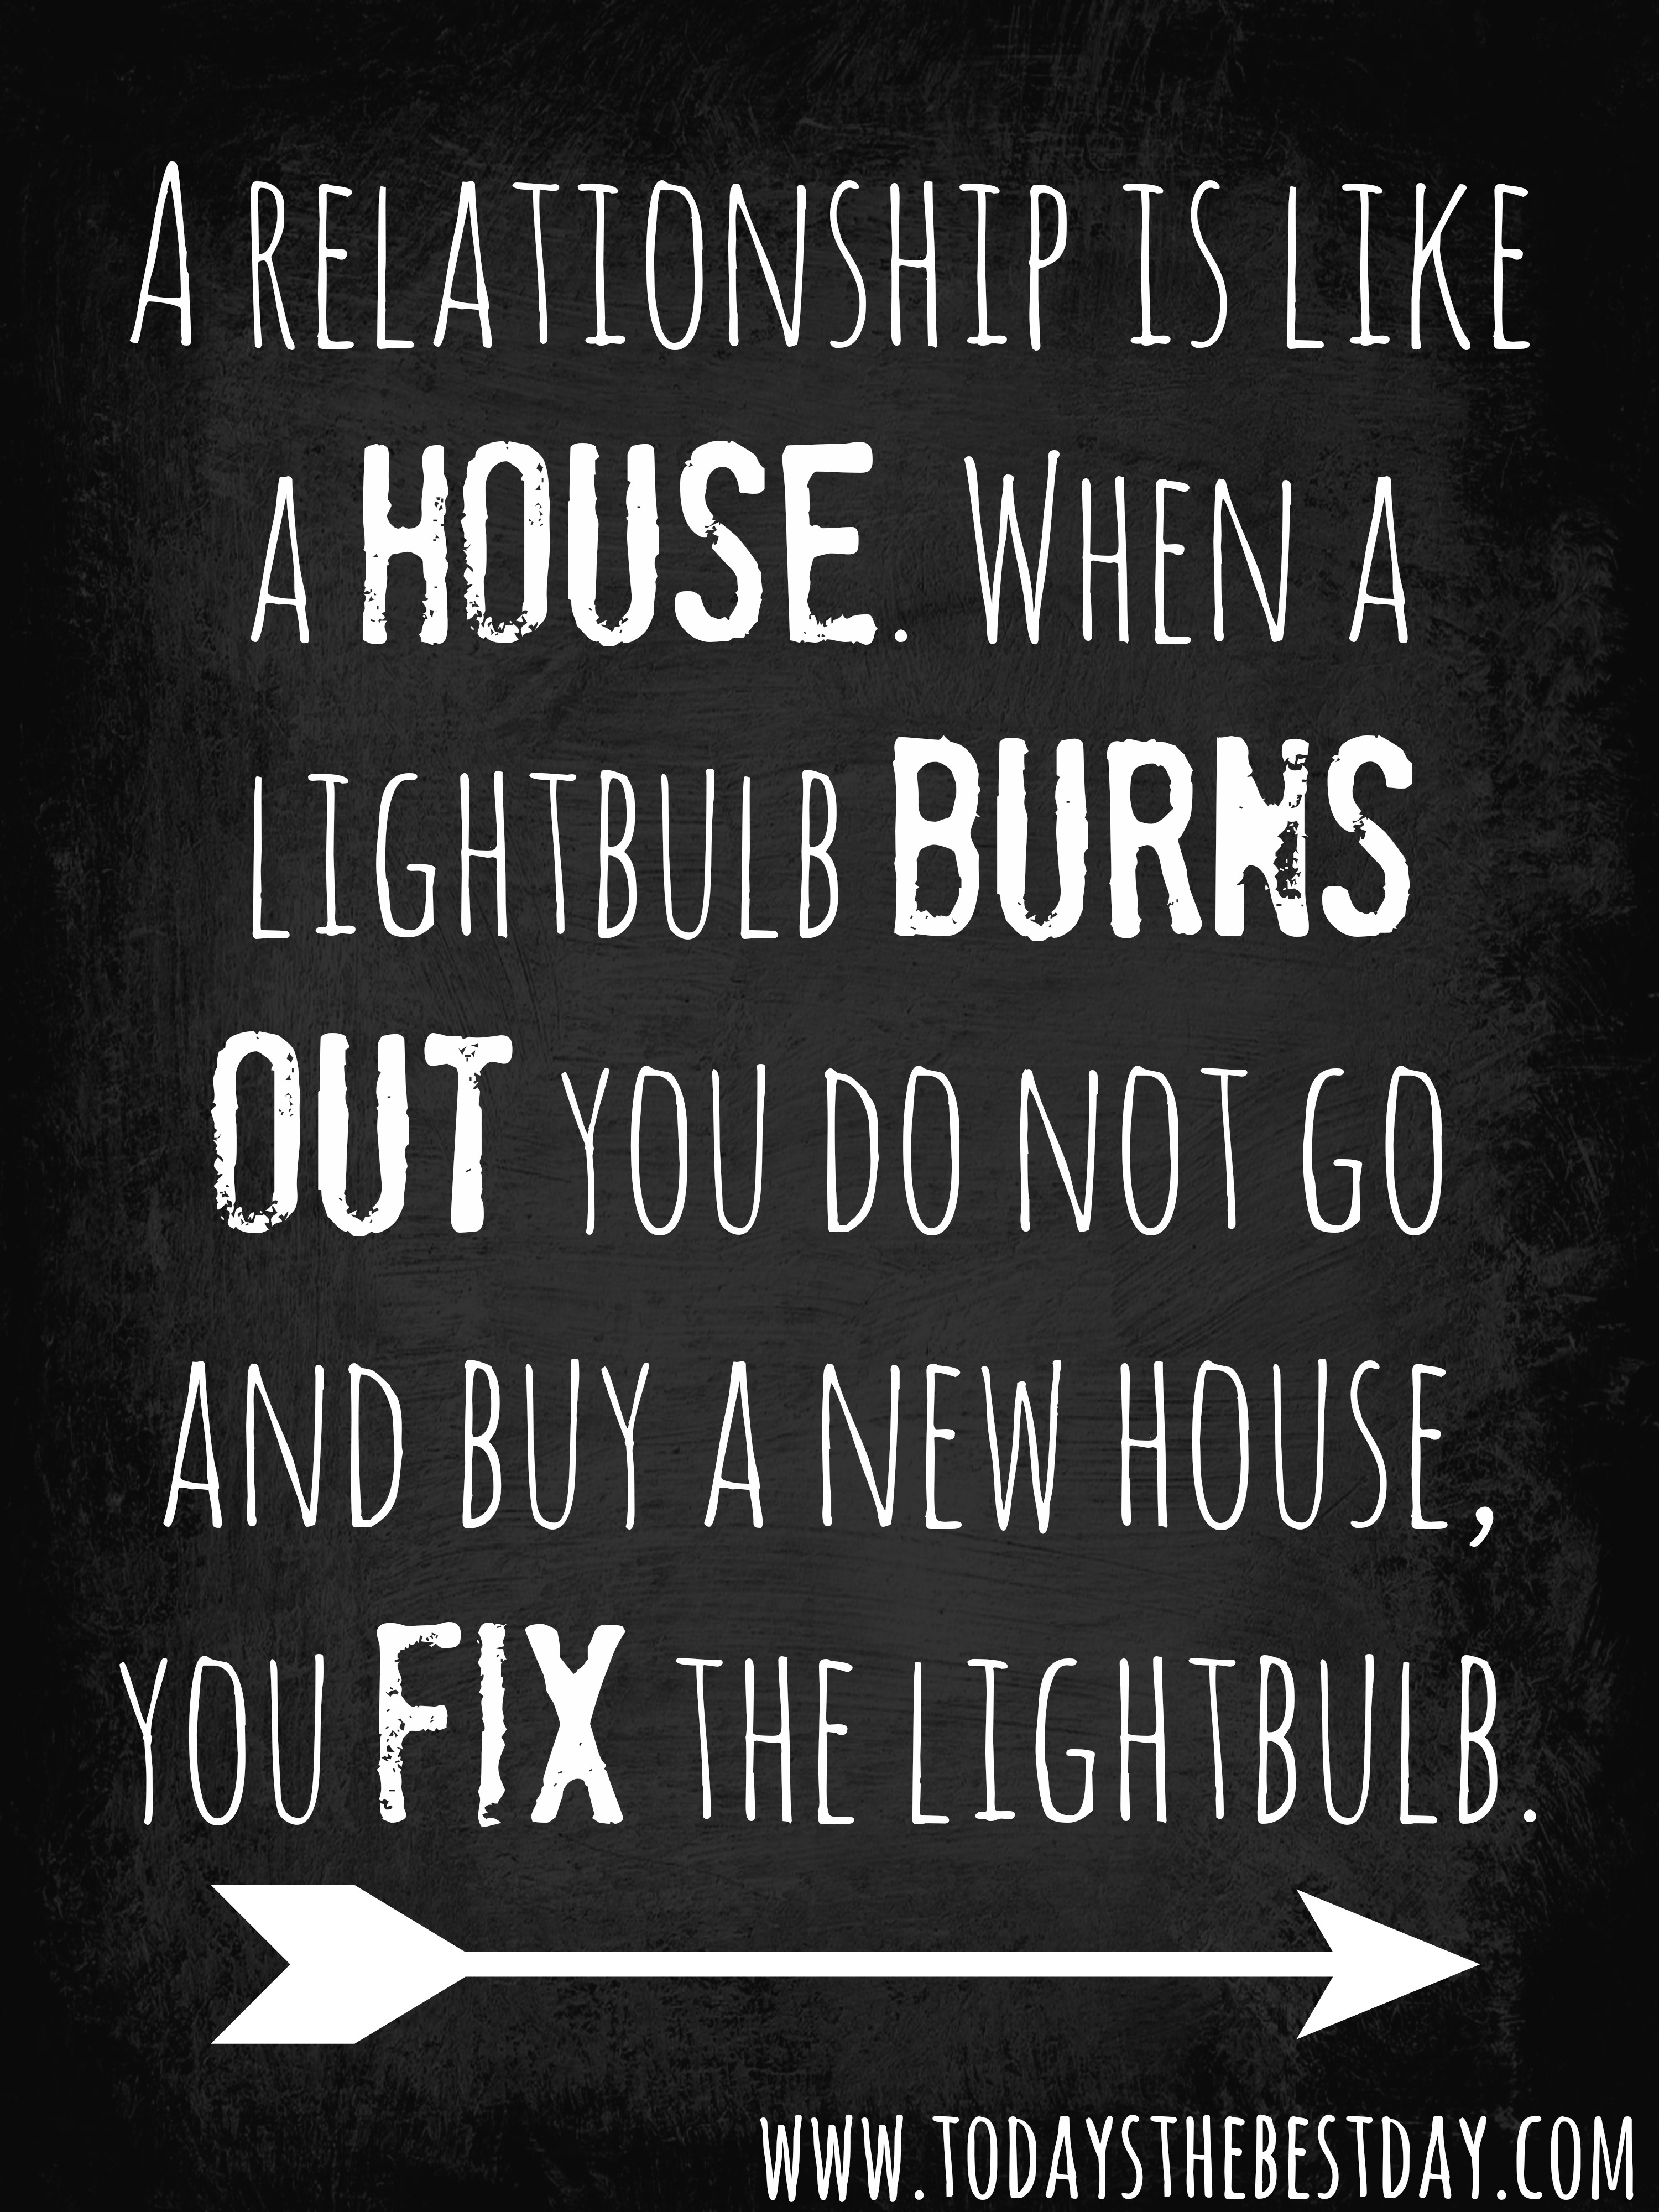 House when a lightbulb burns out you do not go and buy a new house